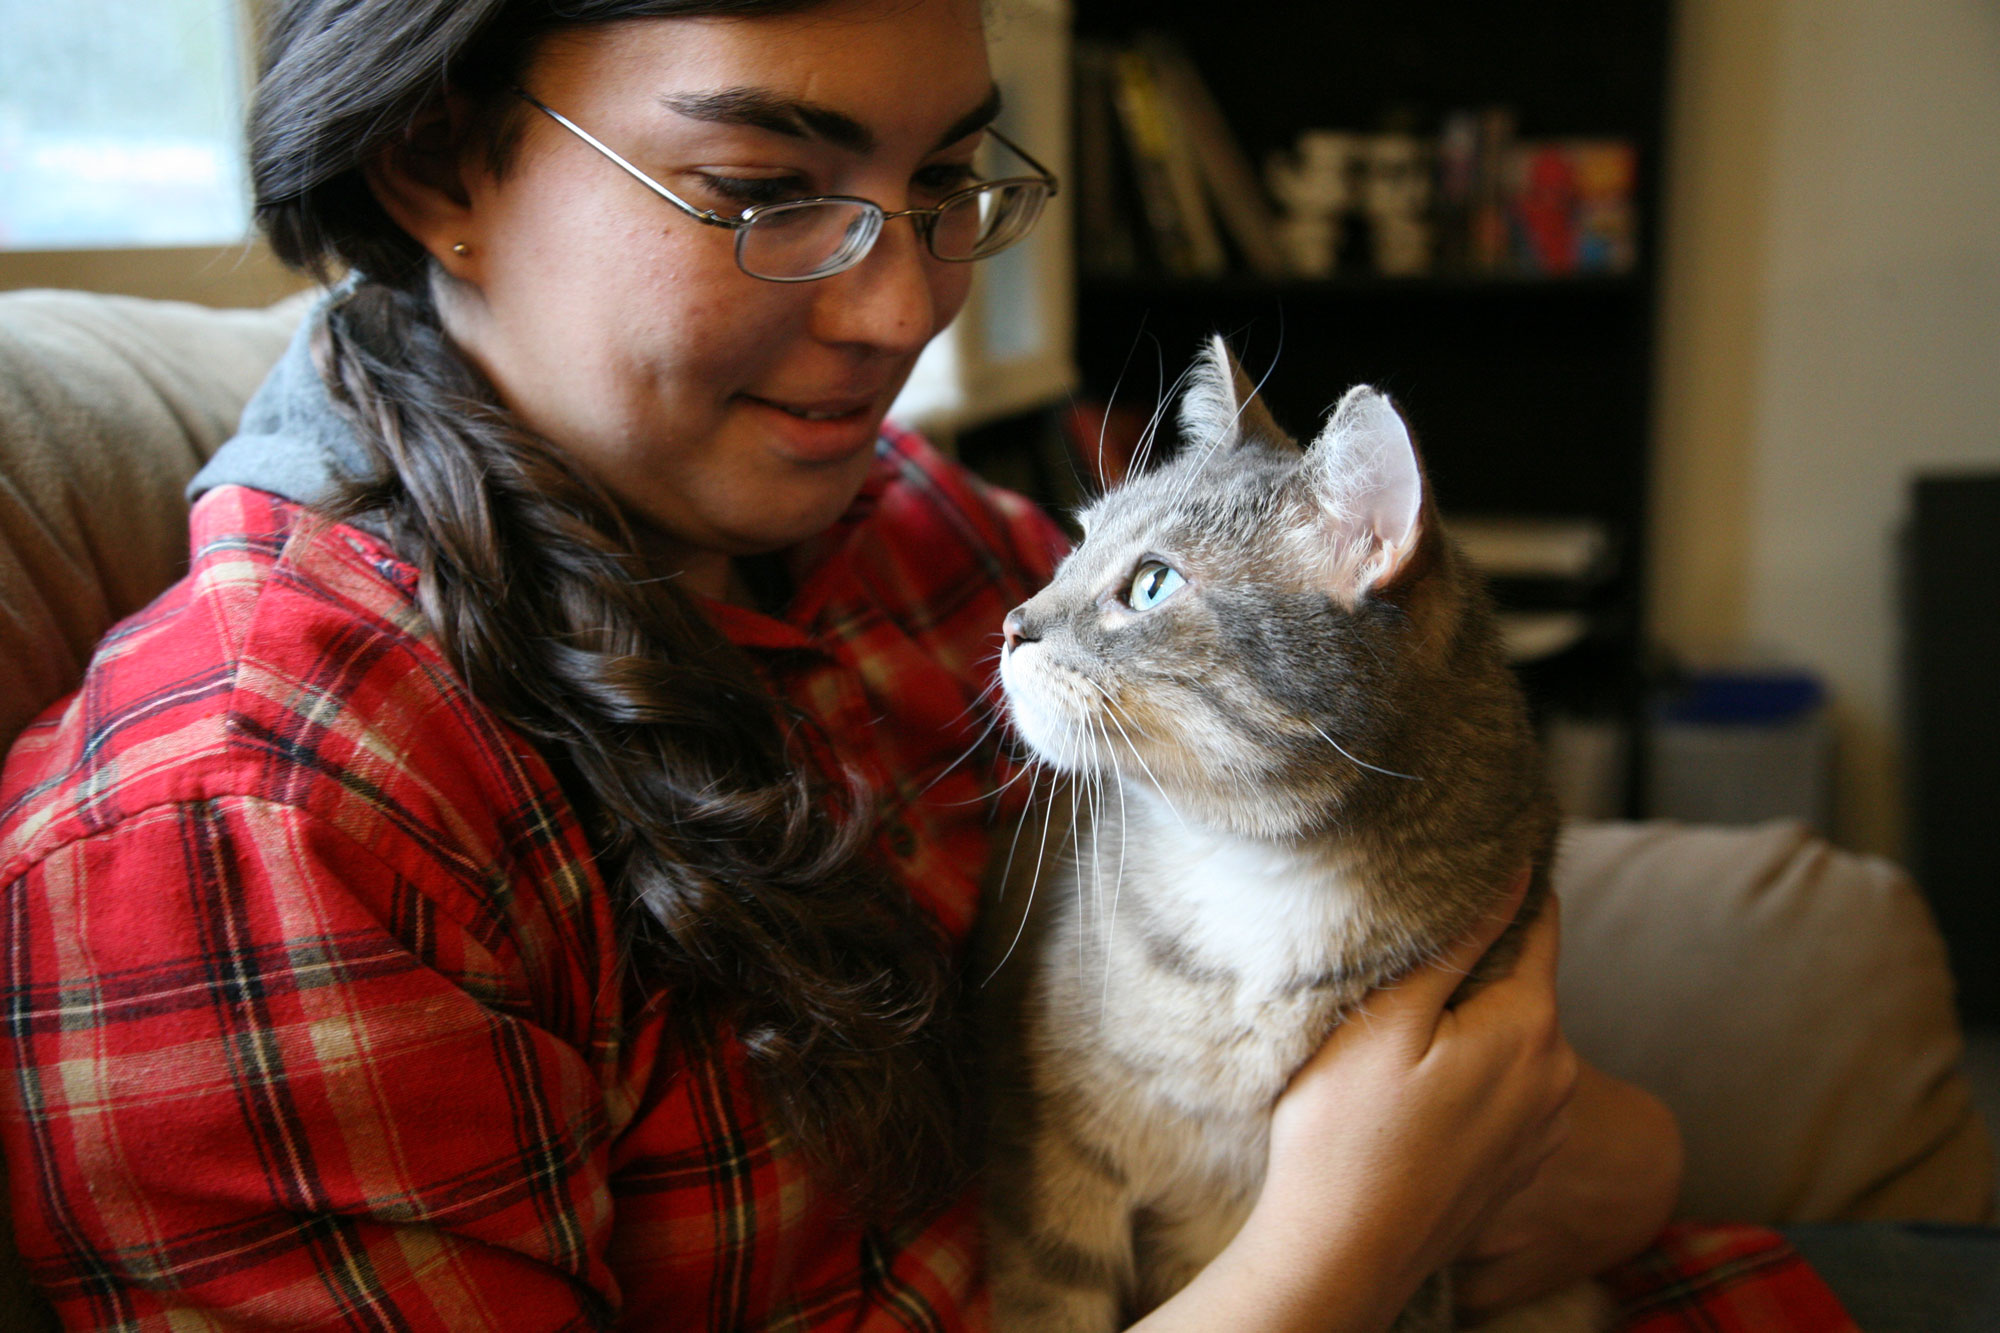 <p>A.J. White says his cats help him with depression and anxiety and are a large part of the reason he's able to function in the world. He holds down a job at a local gas station and is planning to head off to college. He's hoping the cats can come, too.</p>